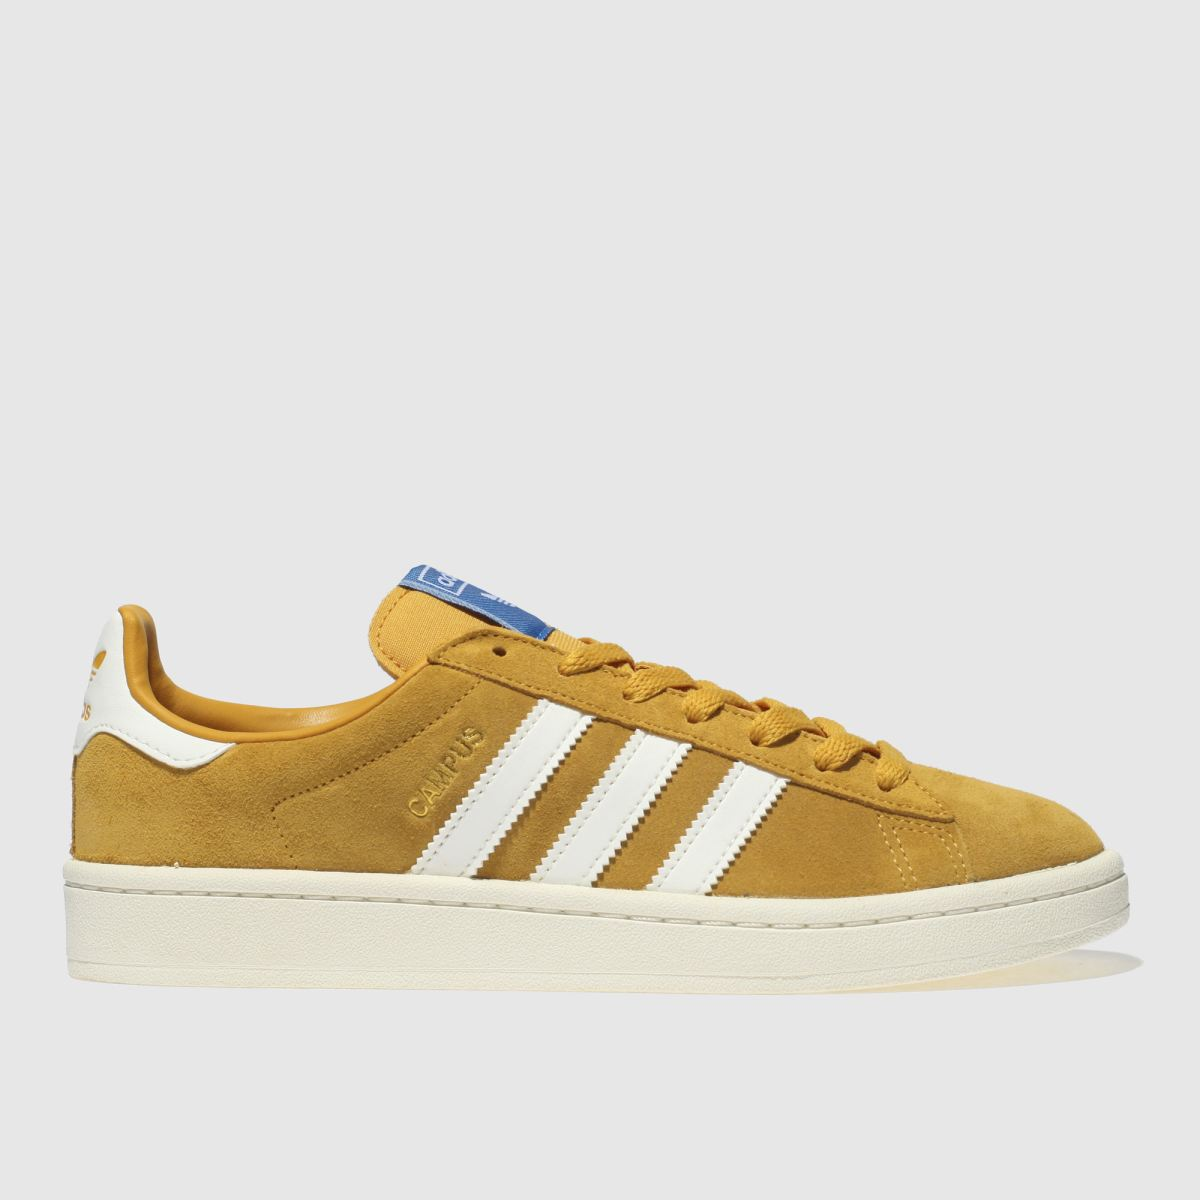 Adidas Yellow Campus Suede Trainers